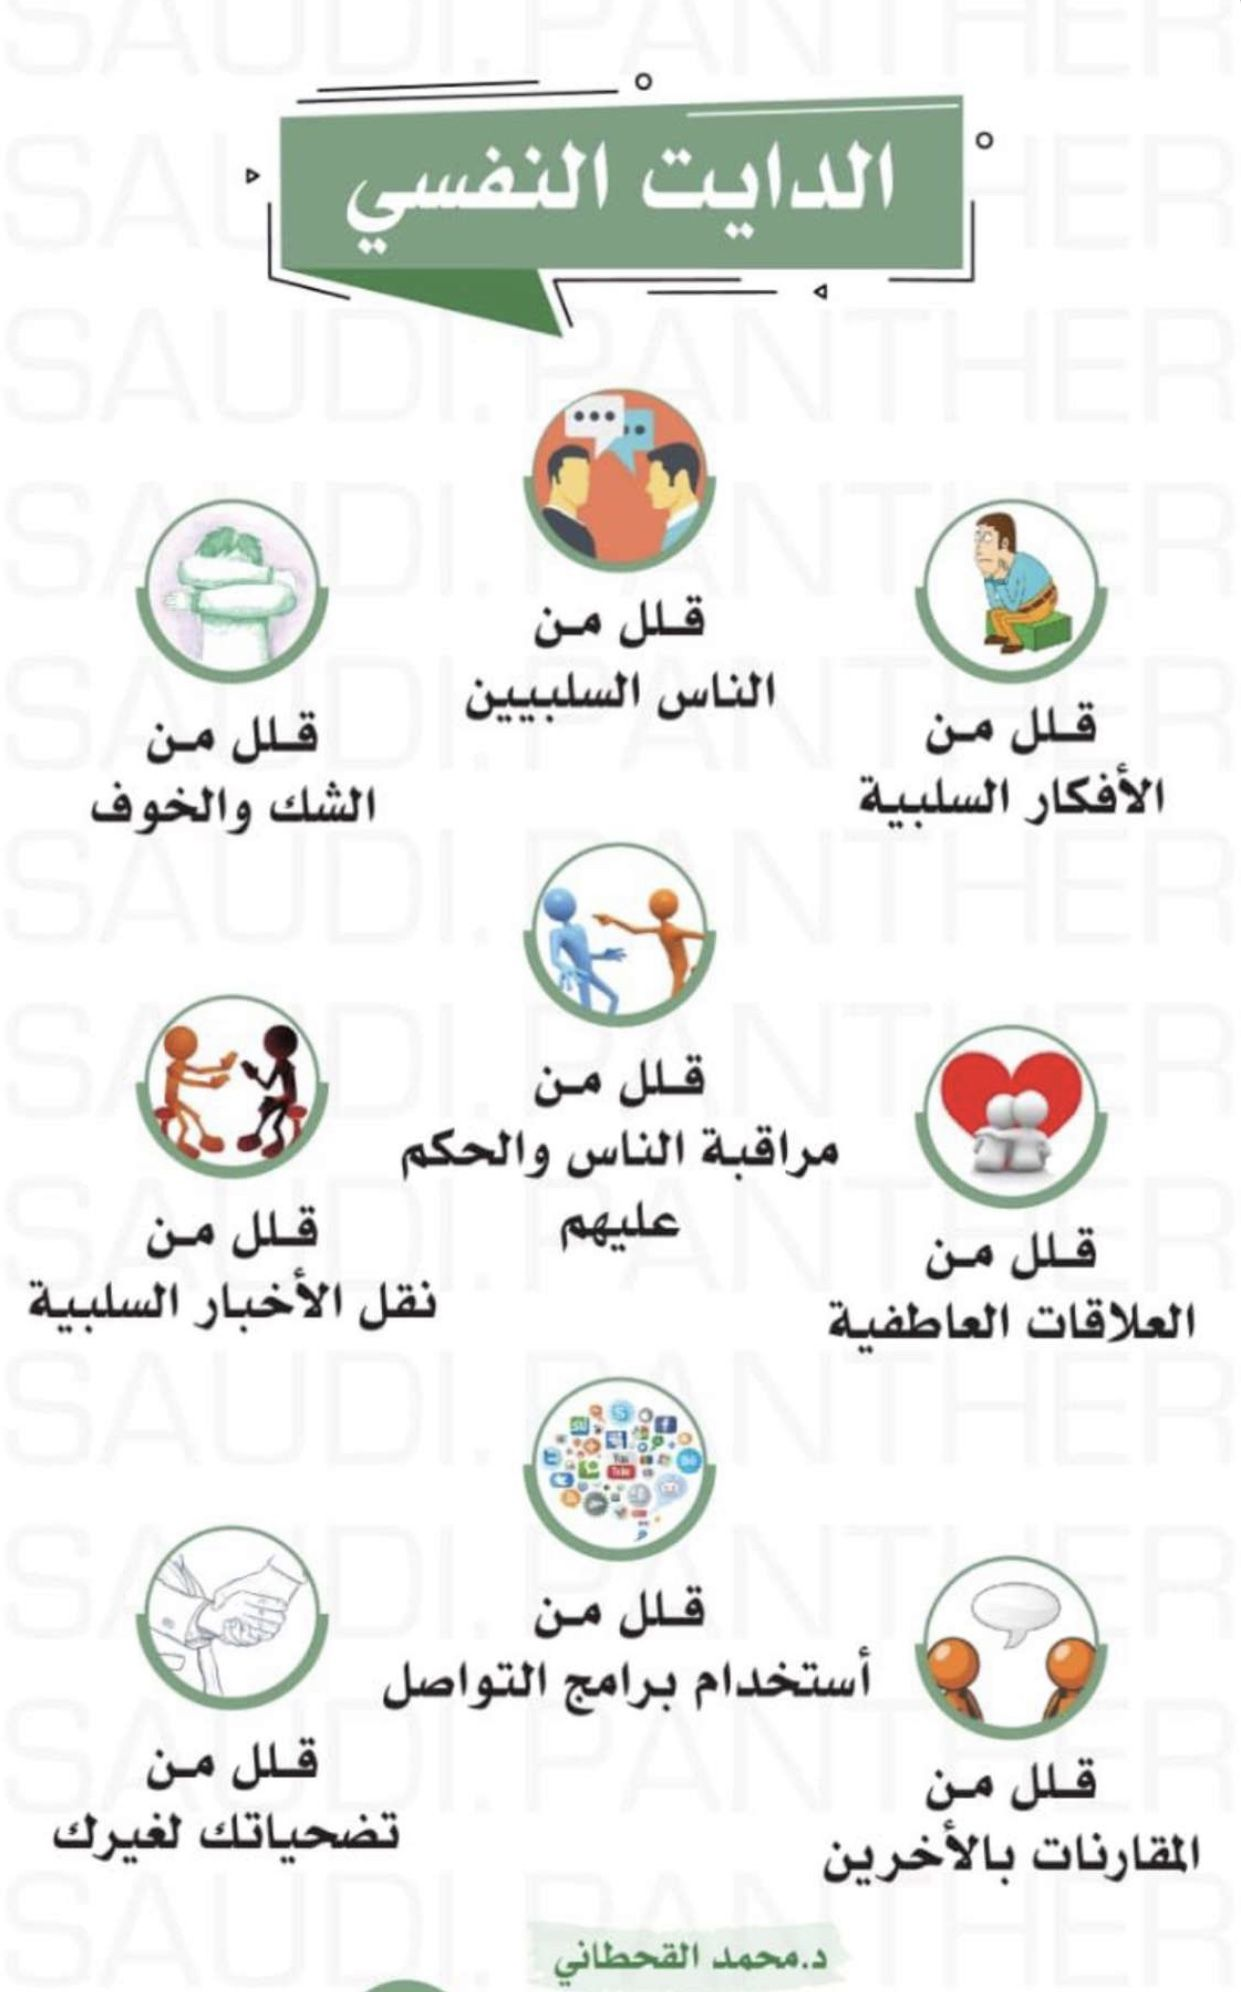 Pin By Re0o0iry On تحفيز Motivations Life Skills Activities How To Better Yourself Positive Notes